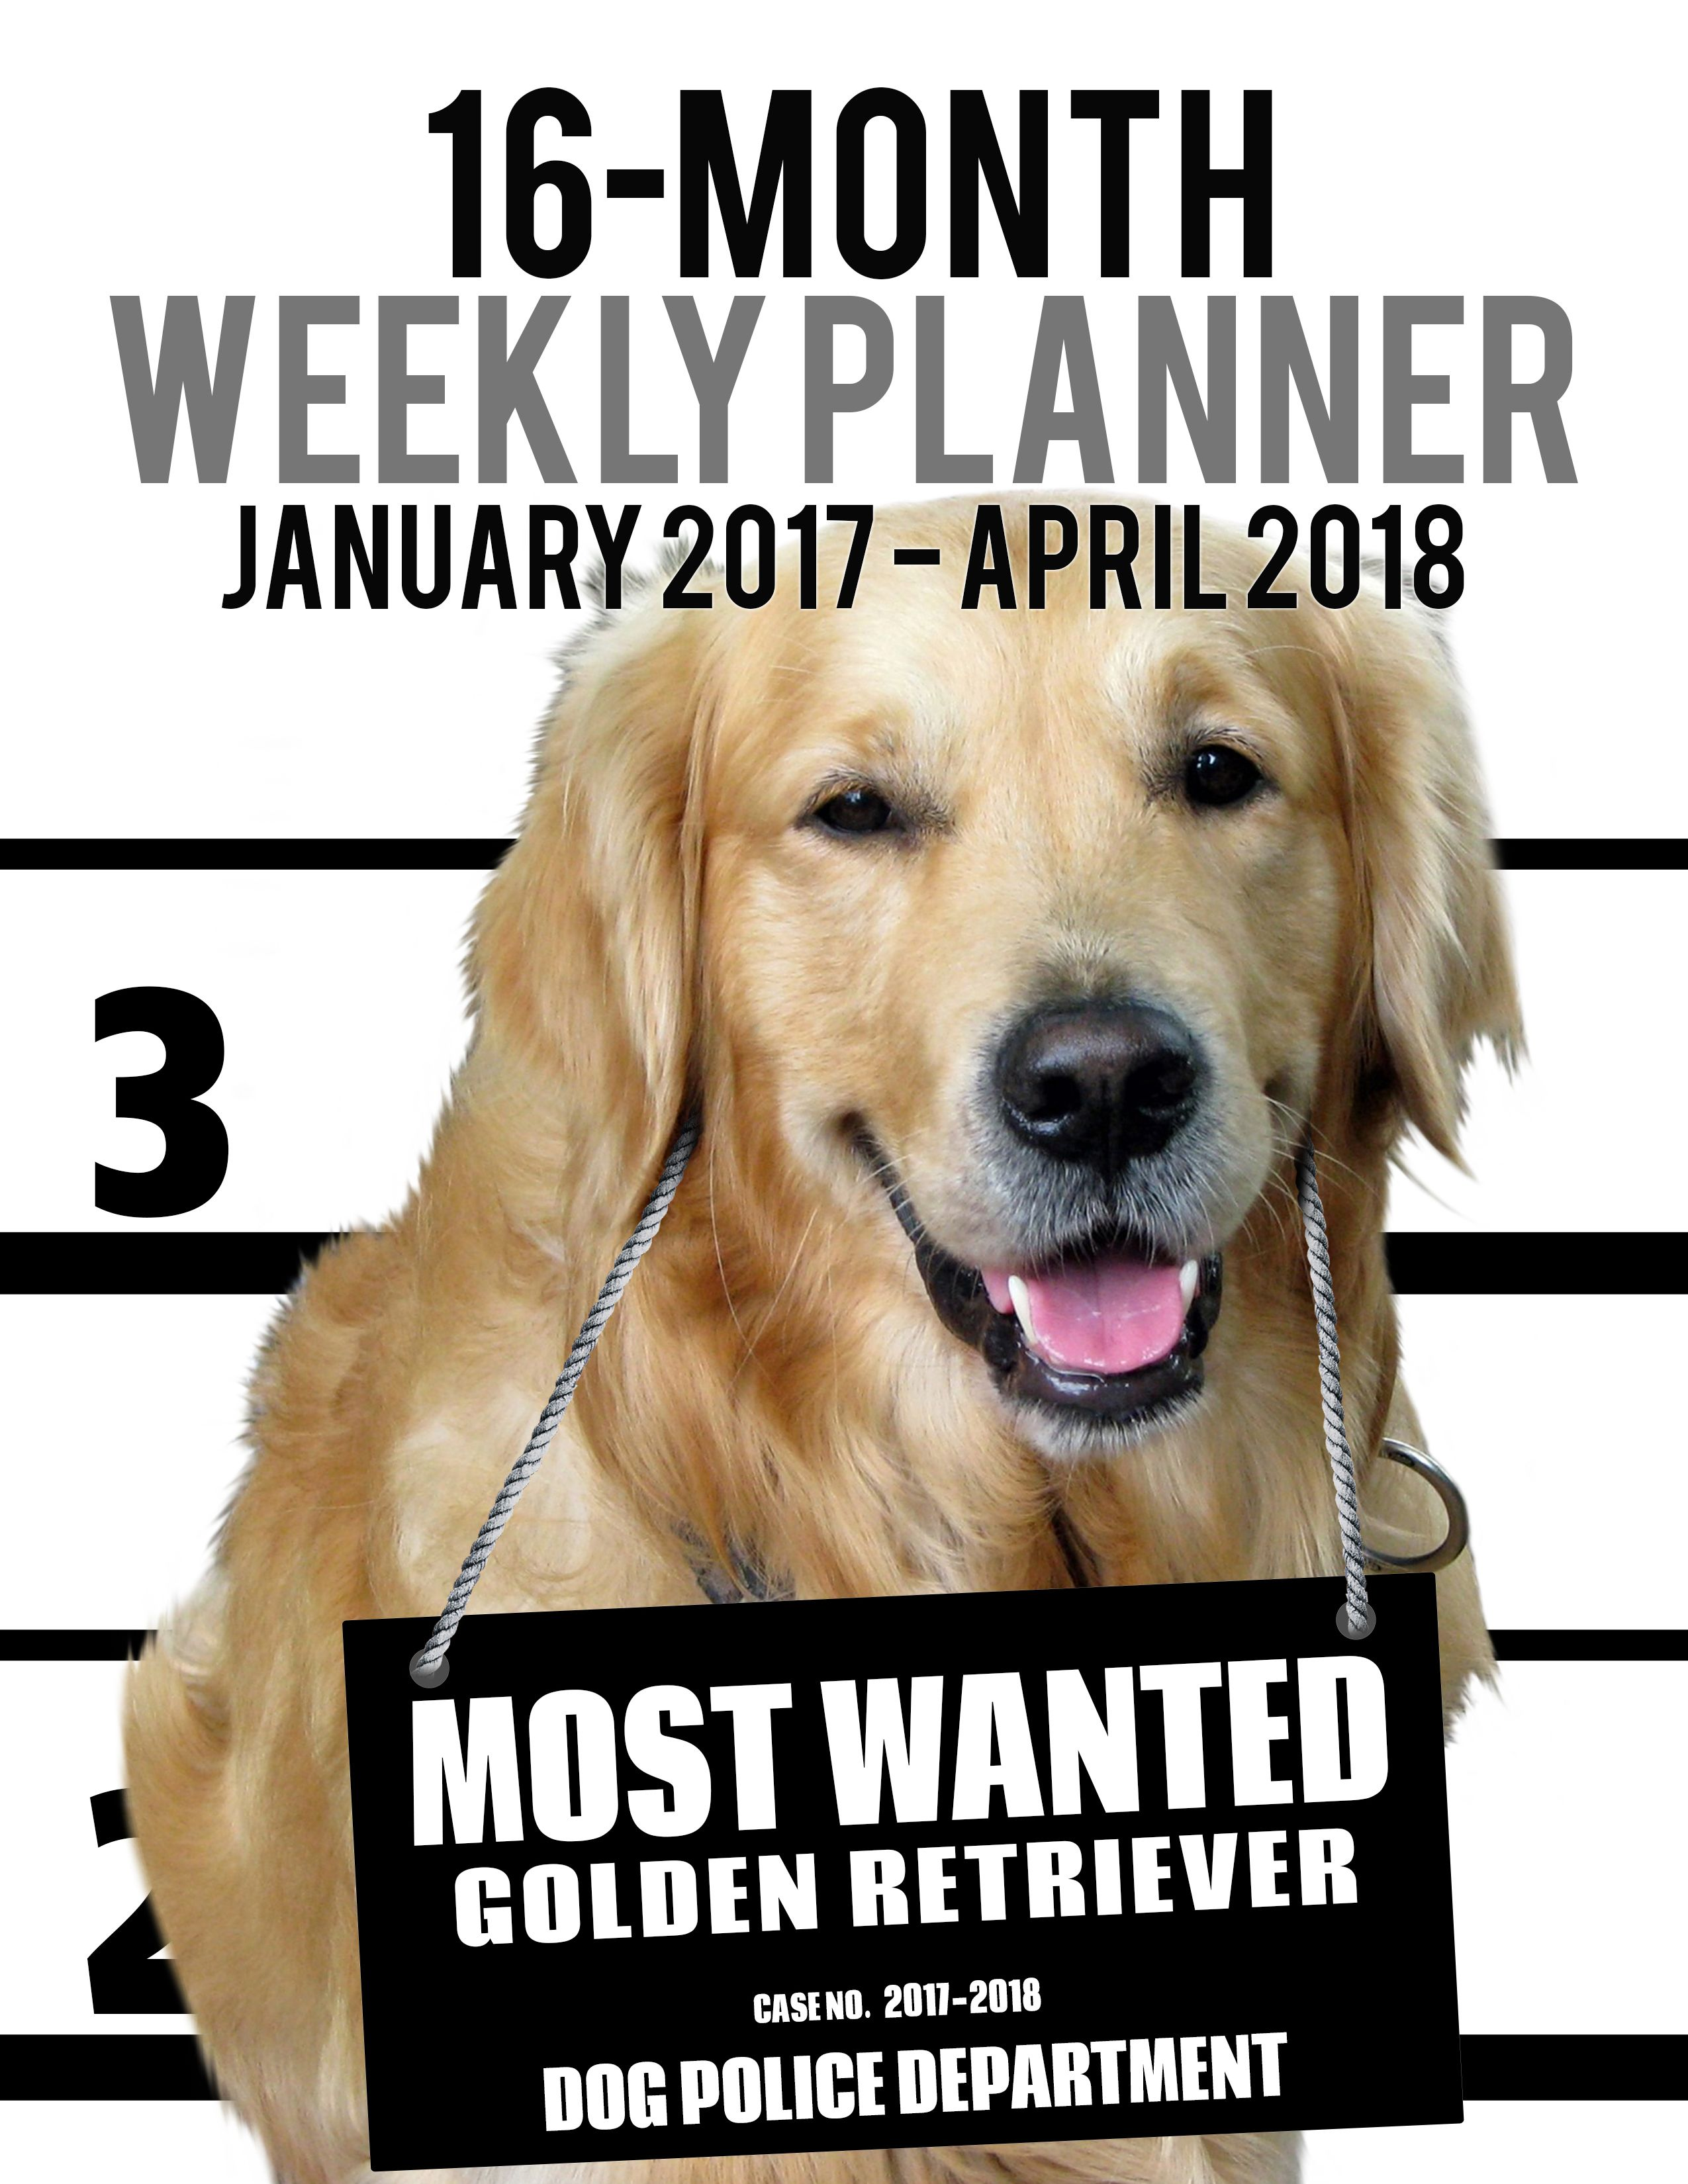 2017 2018 Weekly Planner Most Wanted Golden Retriever Daily